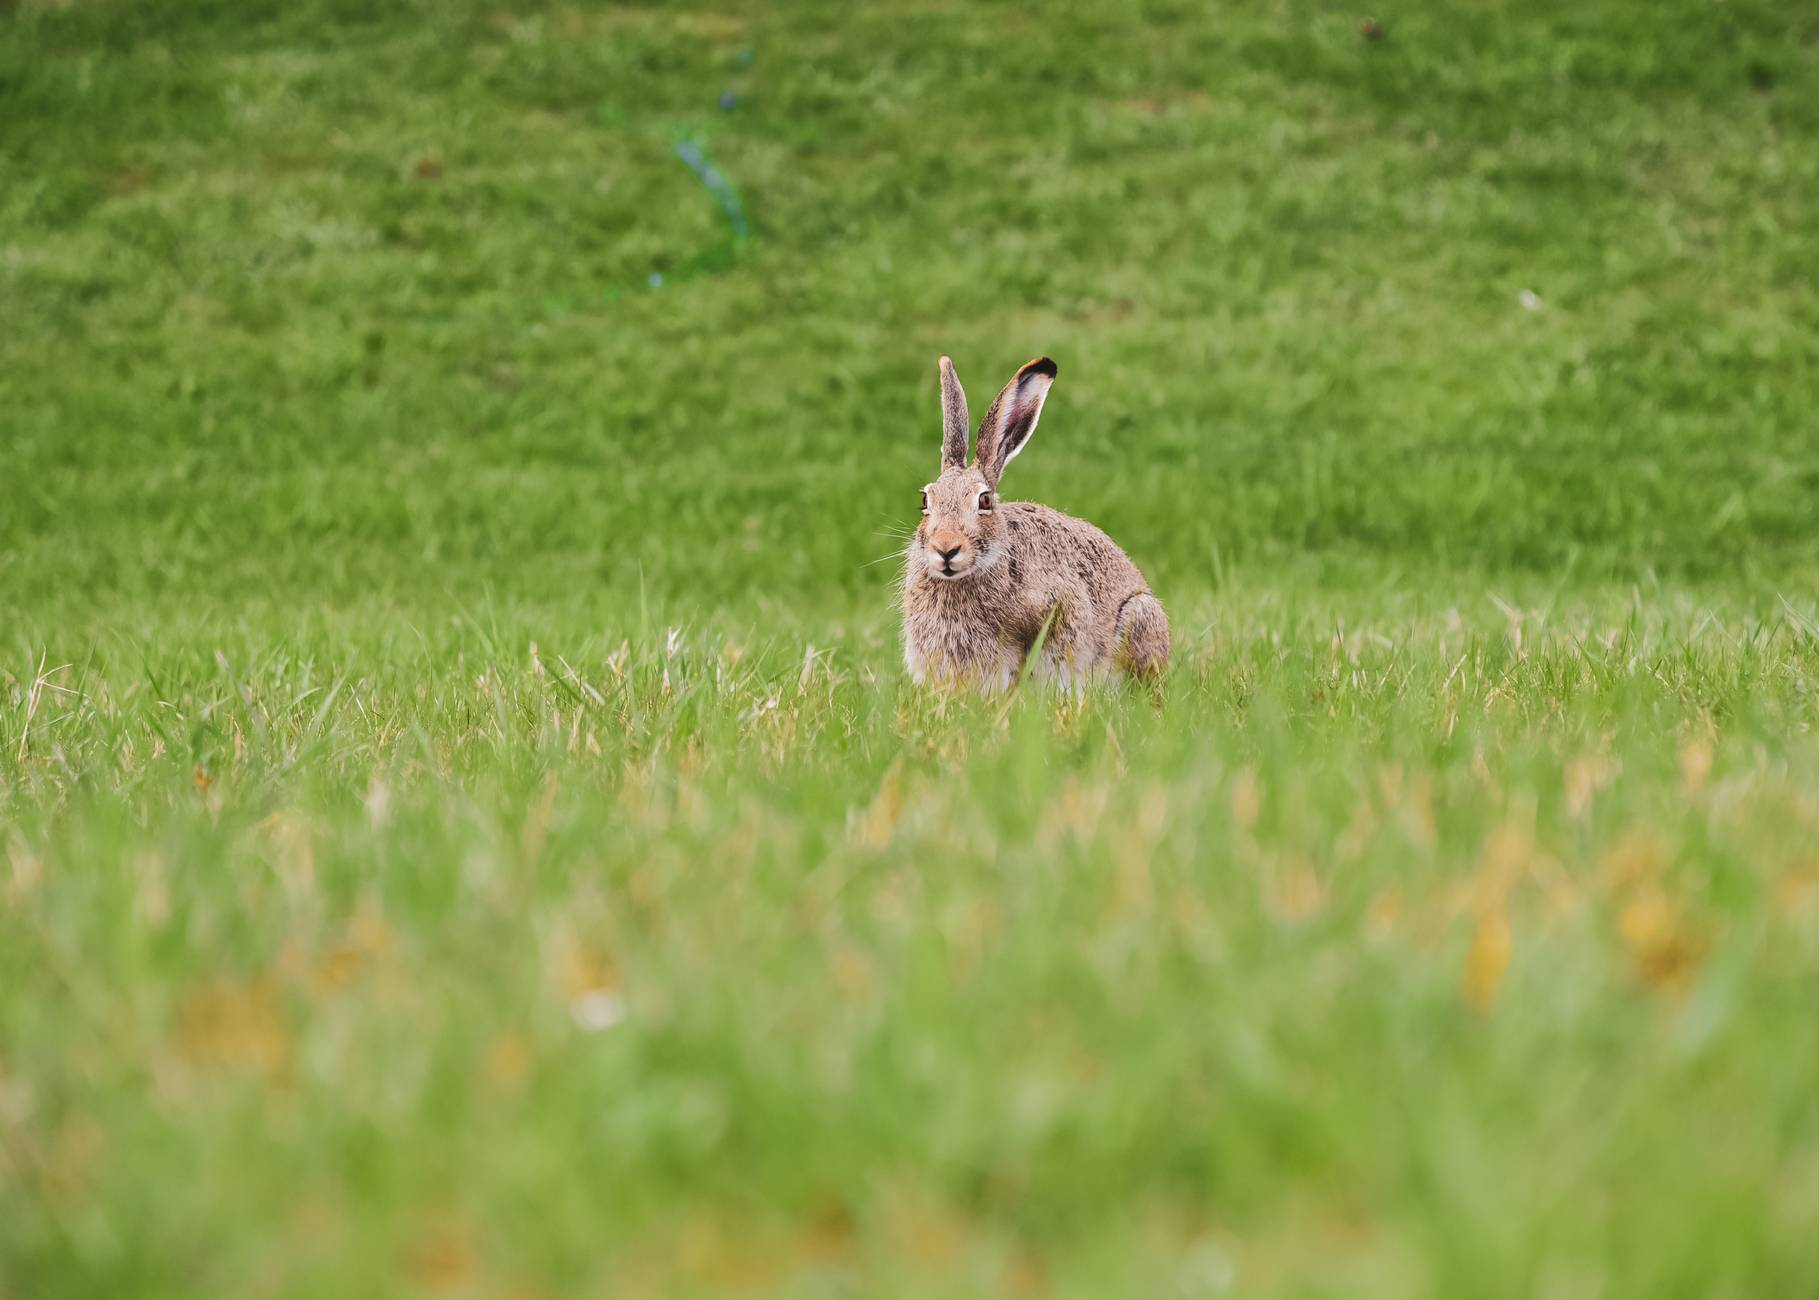 brown rabbit on green grass field